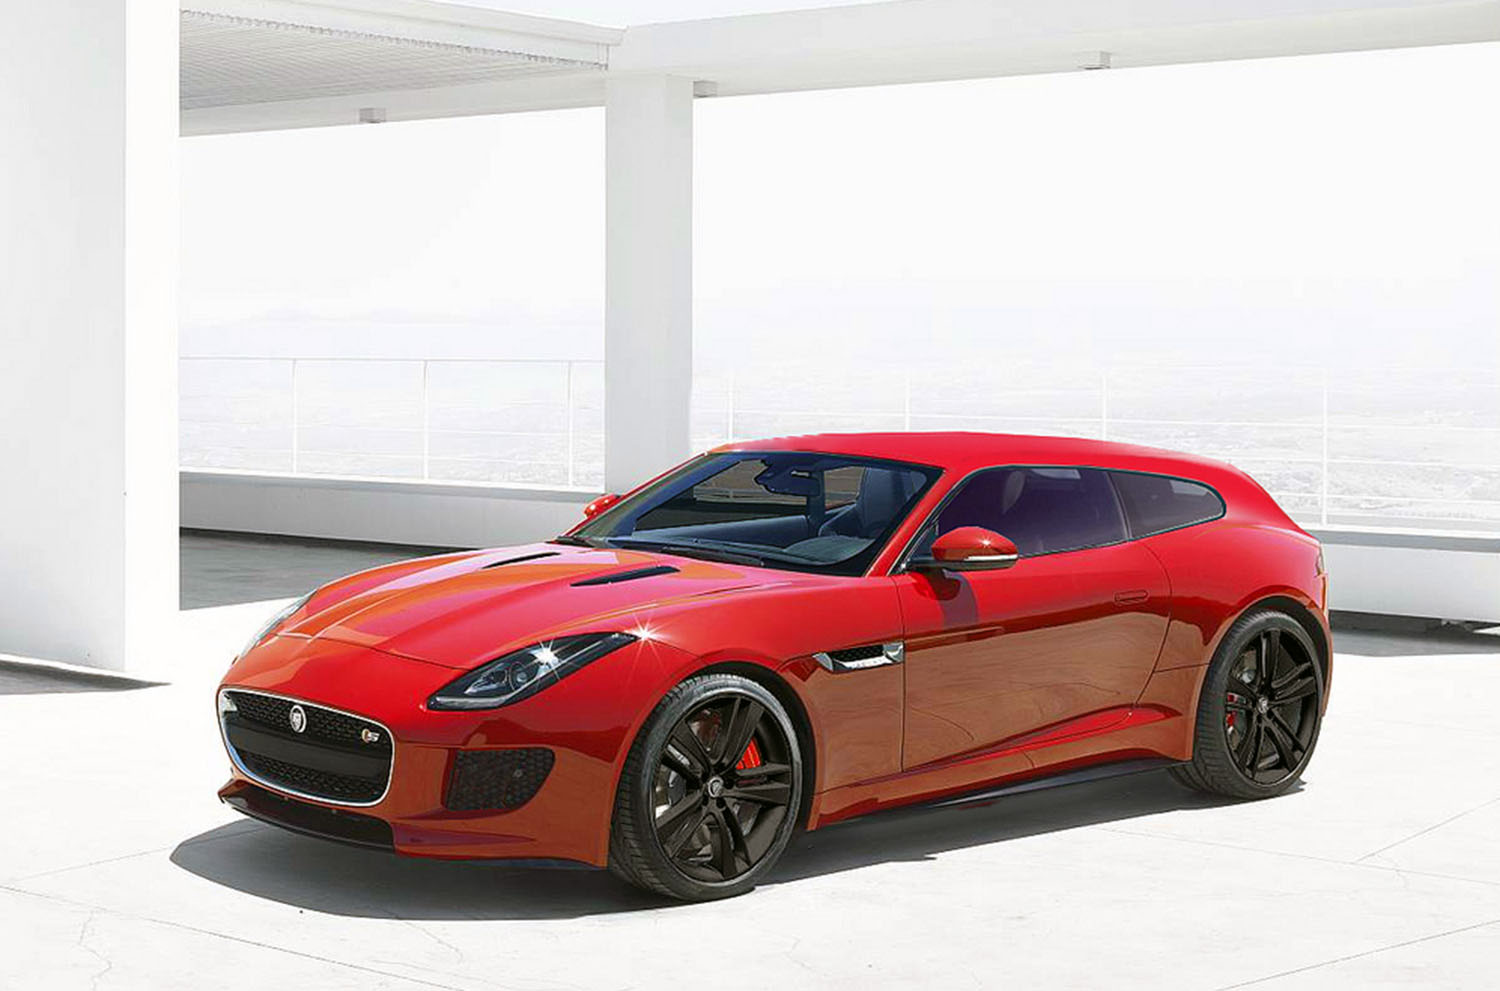 Jaguar F-Type Shooting-brake